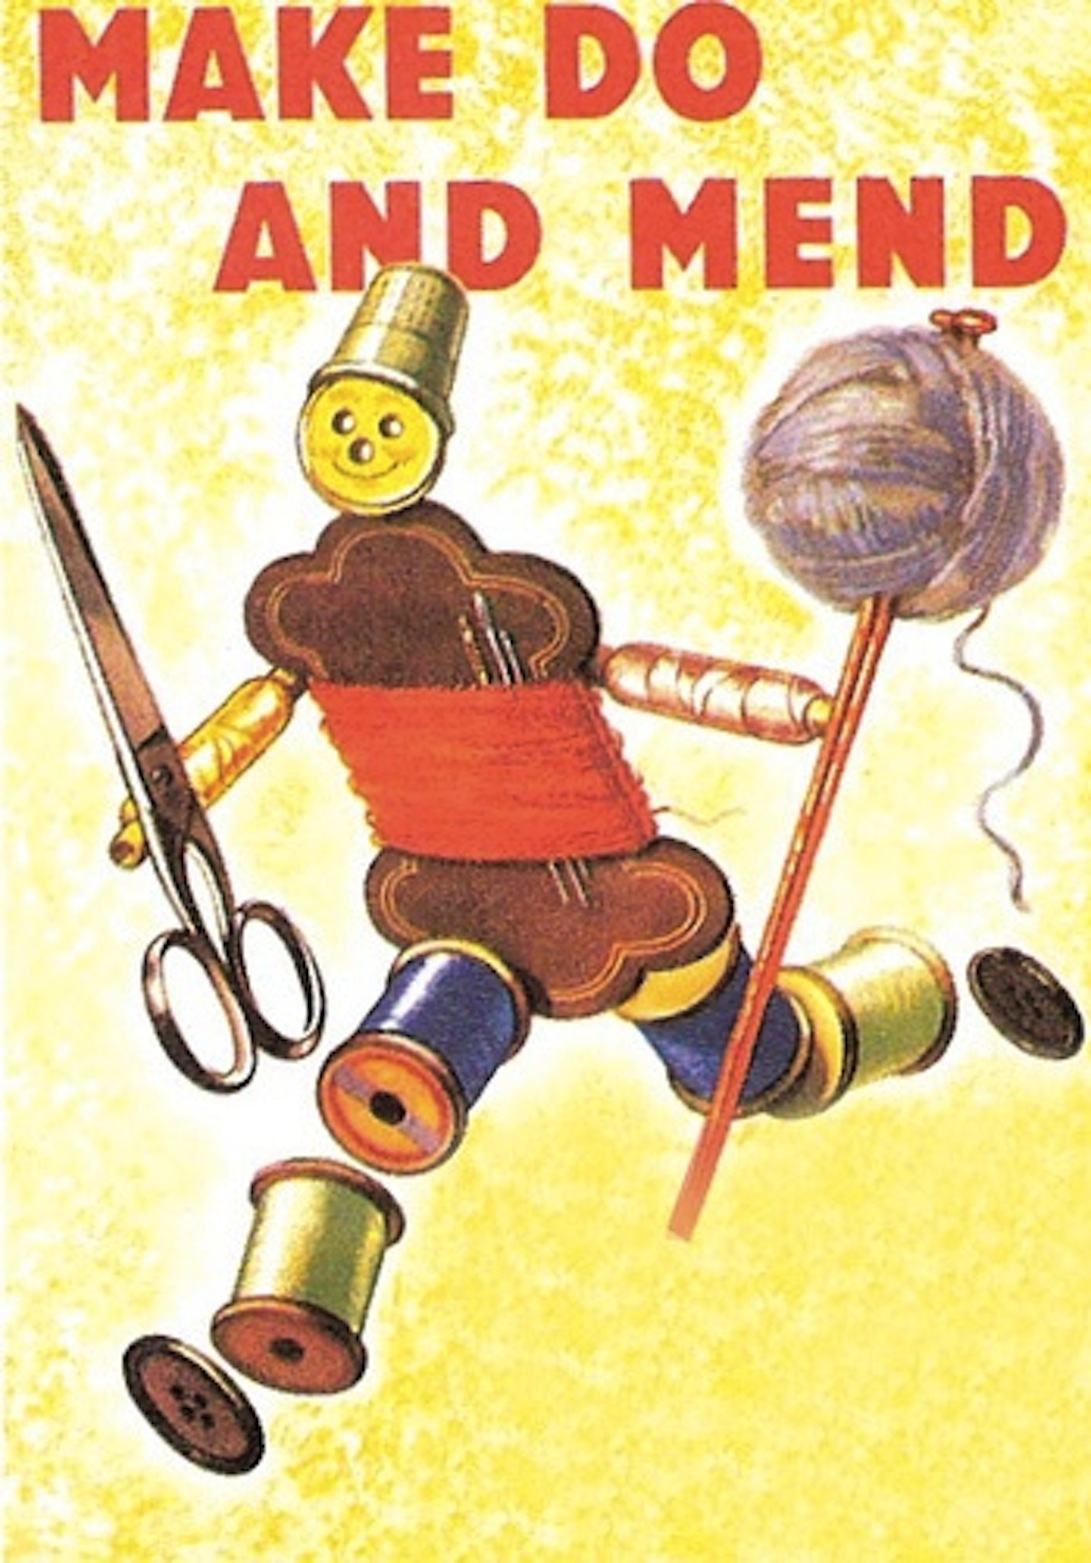 make do & mend man